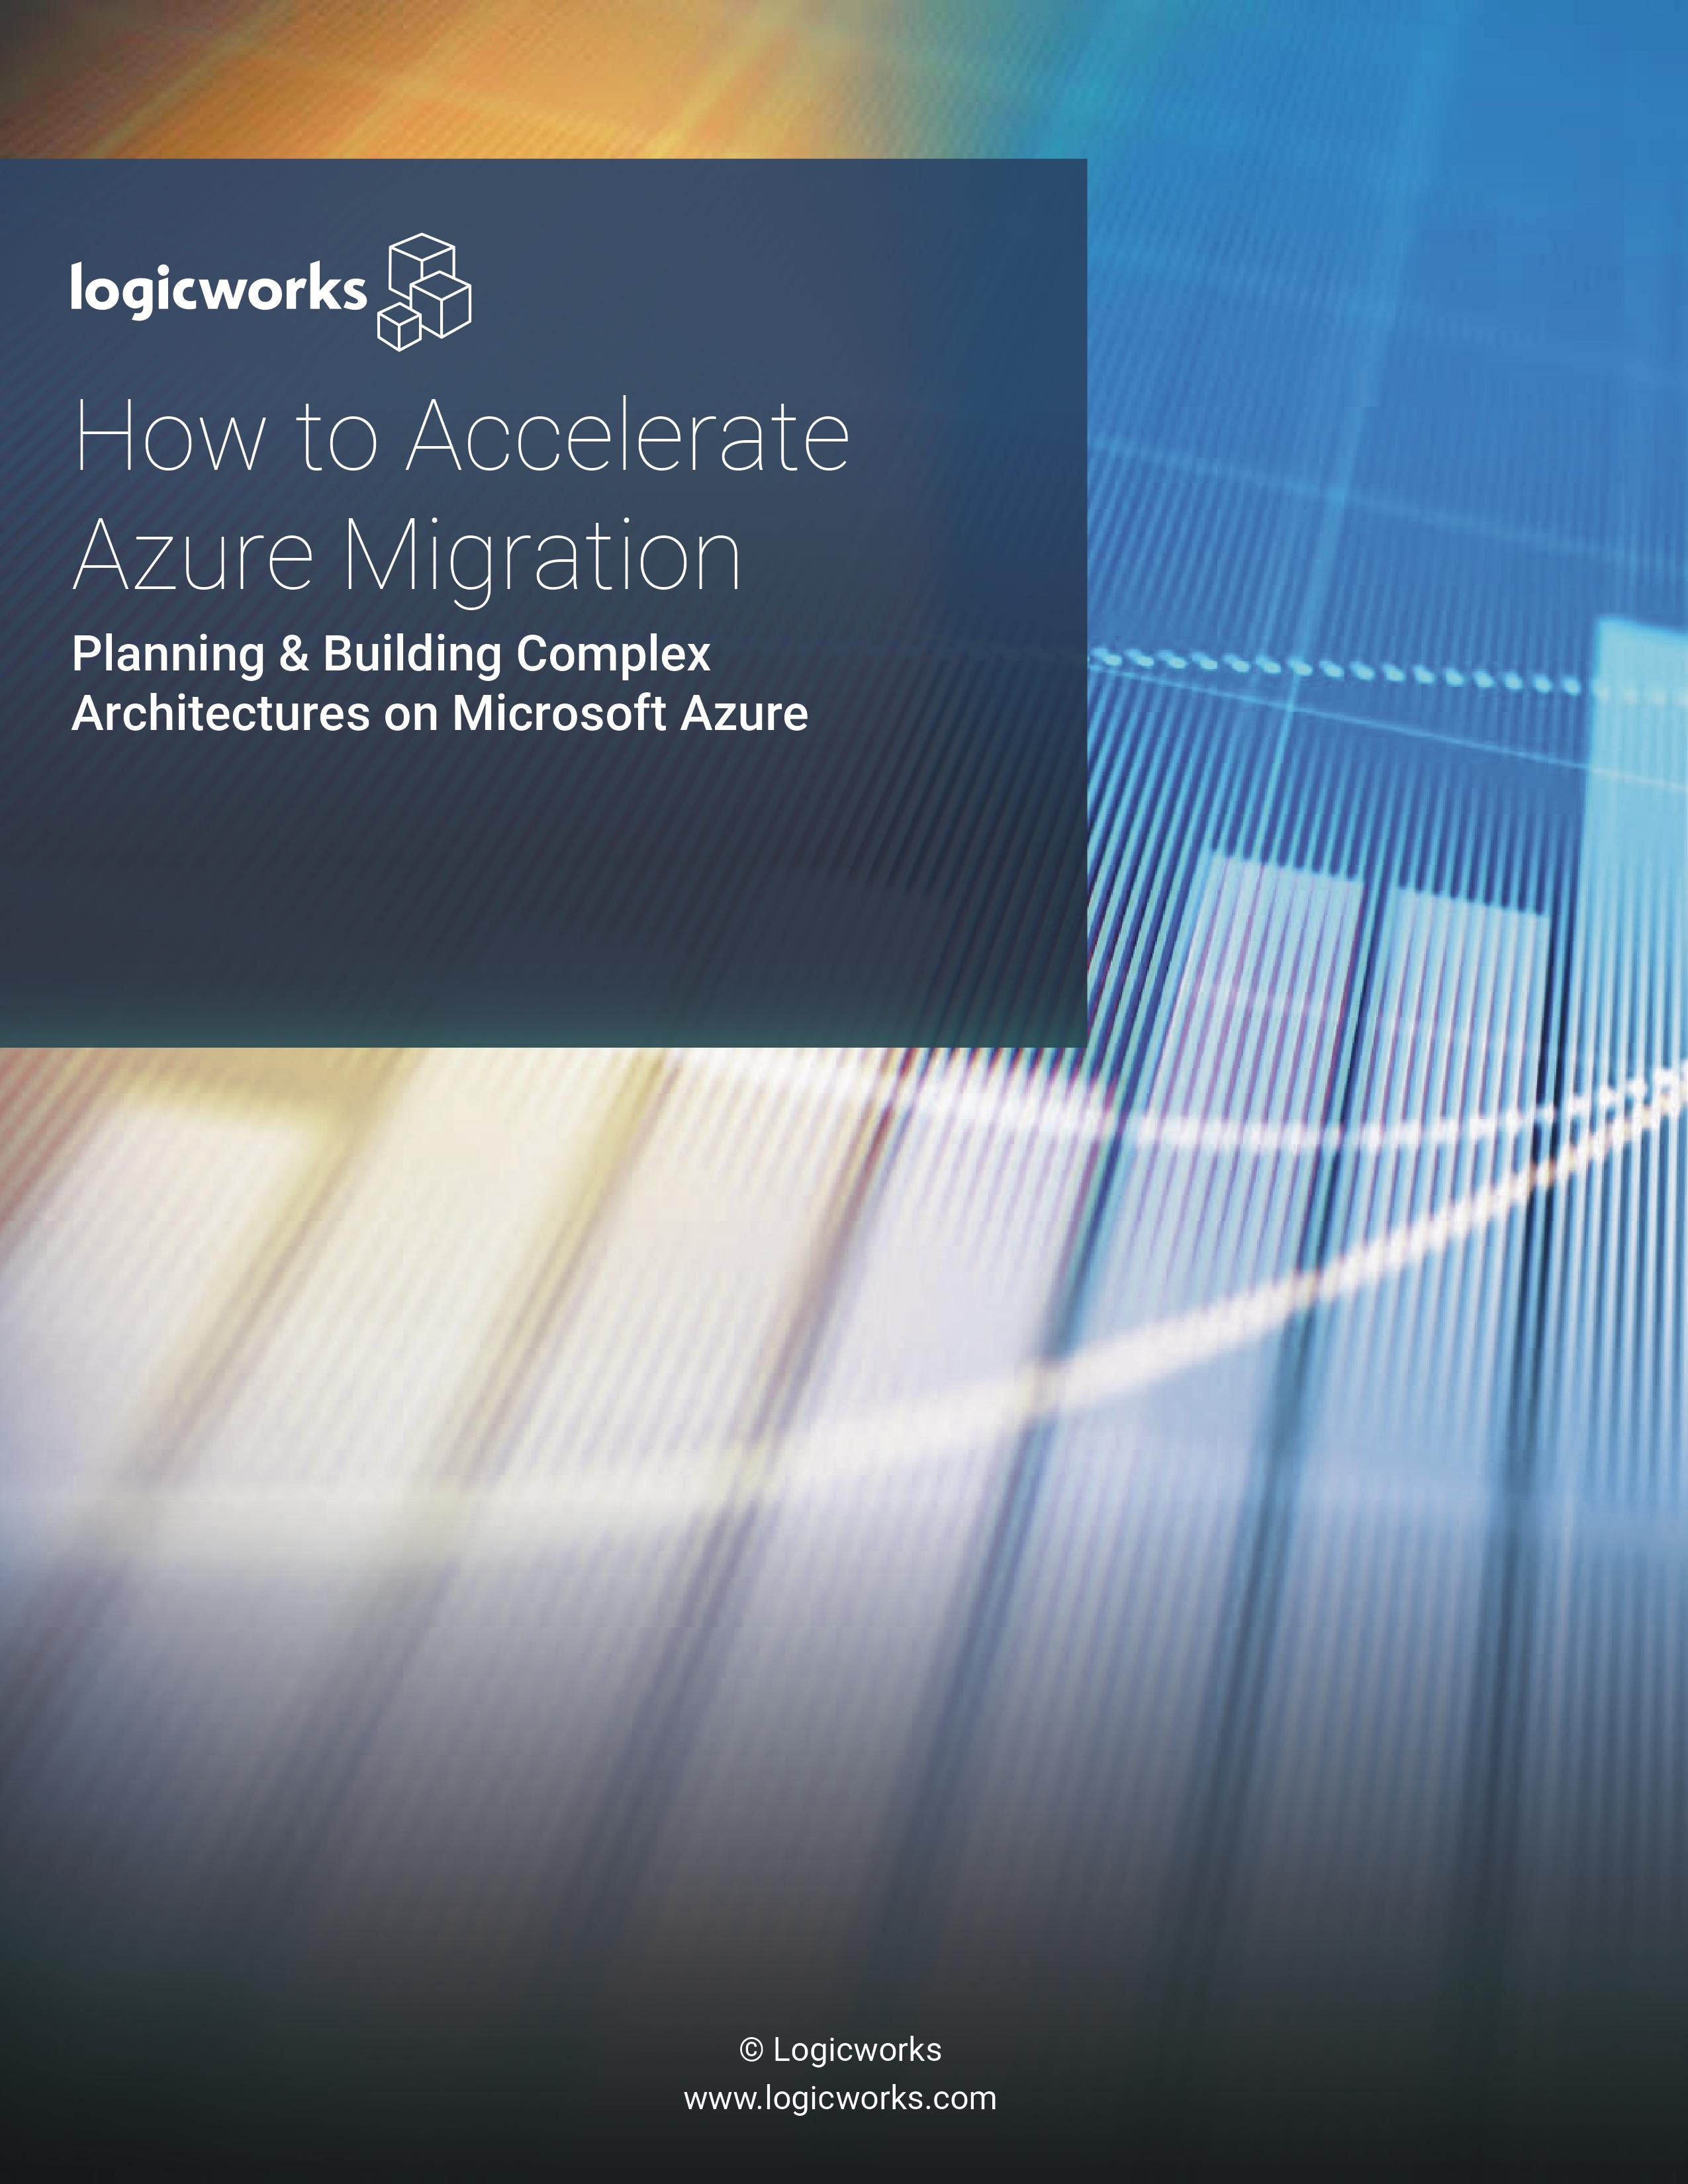 How to Accelerate Azure Migration (Cover)